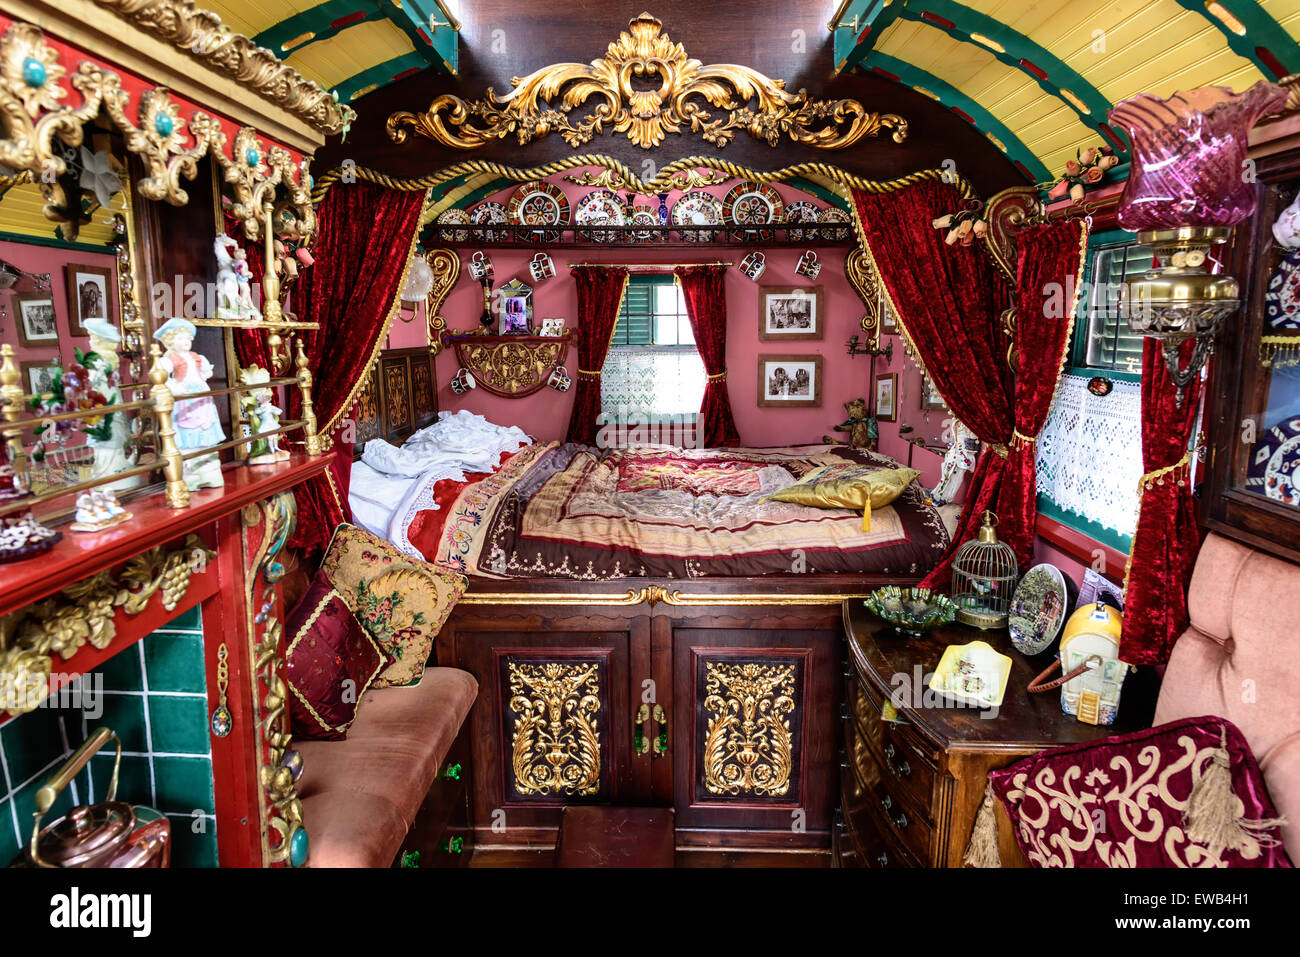 Gypsy Caravan Style Interior Design